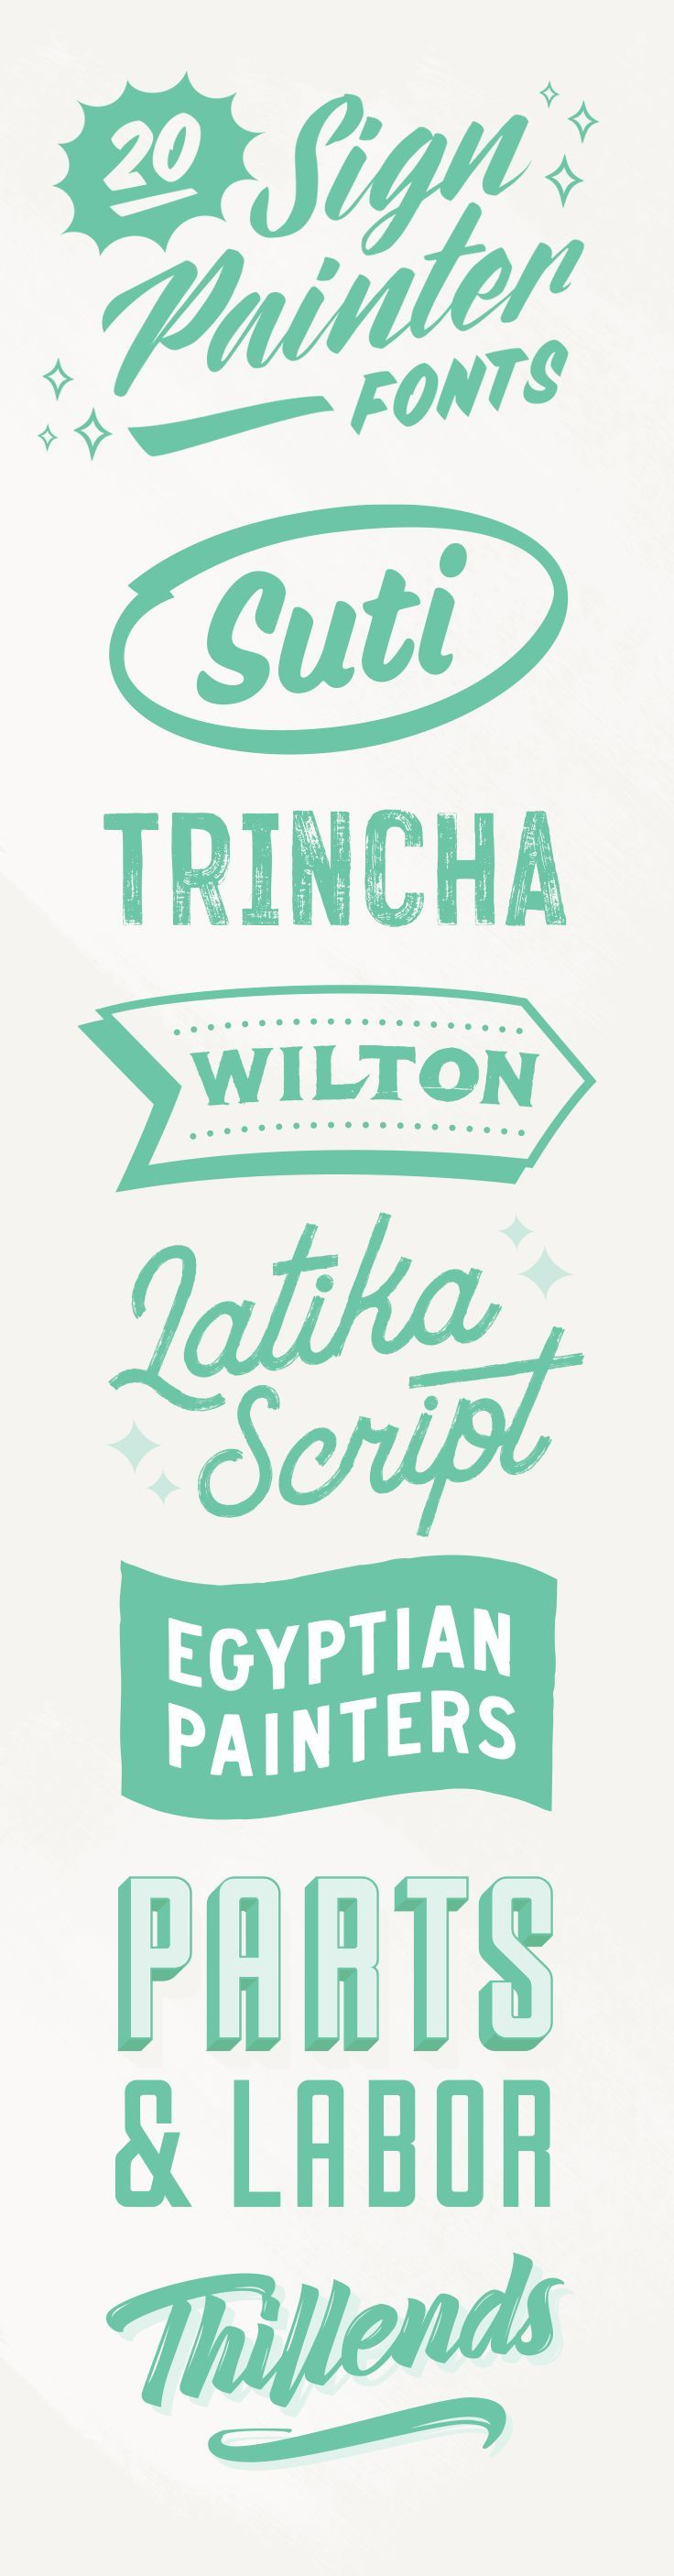 NEED FRESH FONTS? __ On the Creative Market Blog - 20 Sign Painter Fonts to Create Labels, Signs, and Cards